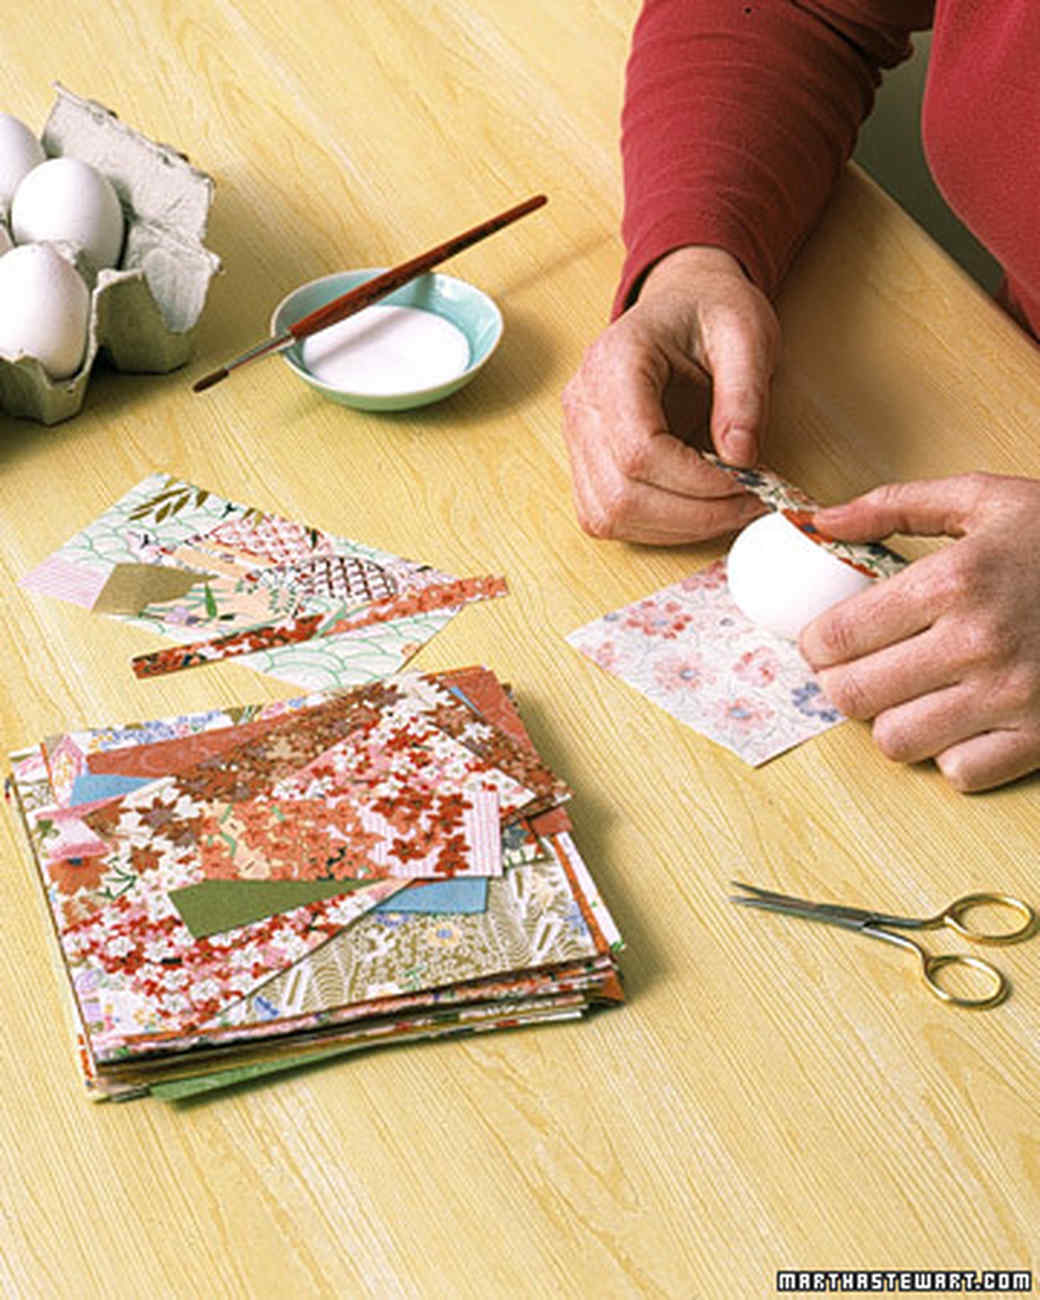 How to put scrapbook paper on wood - Introduction